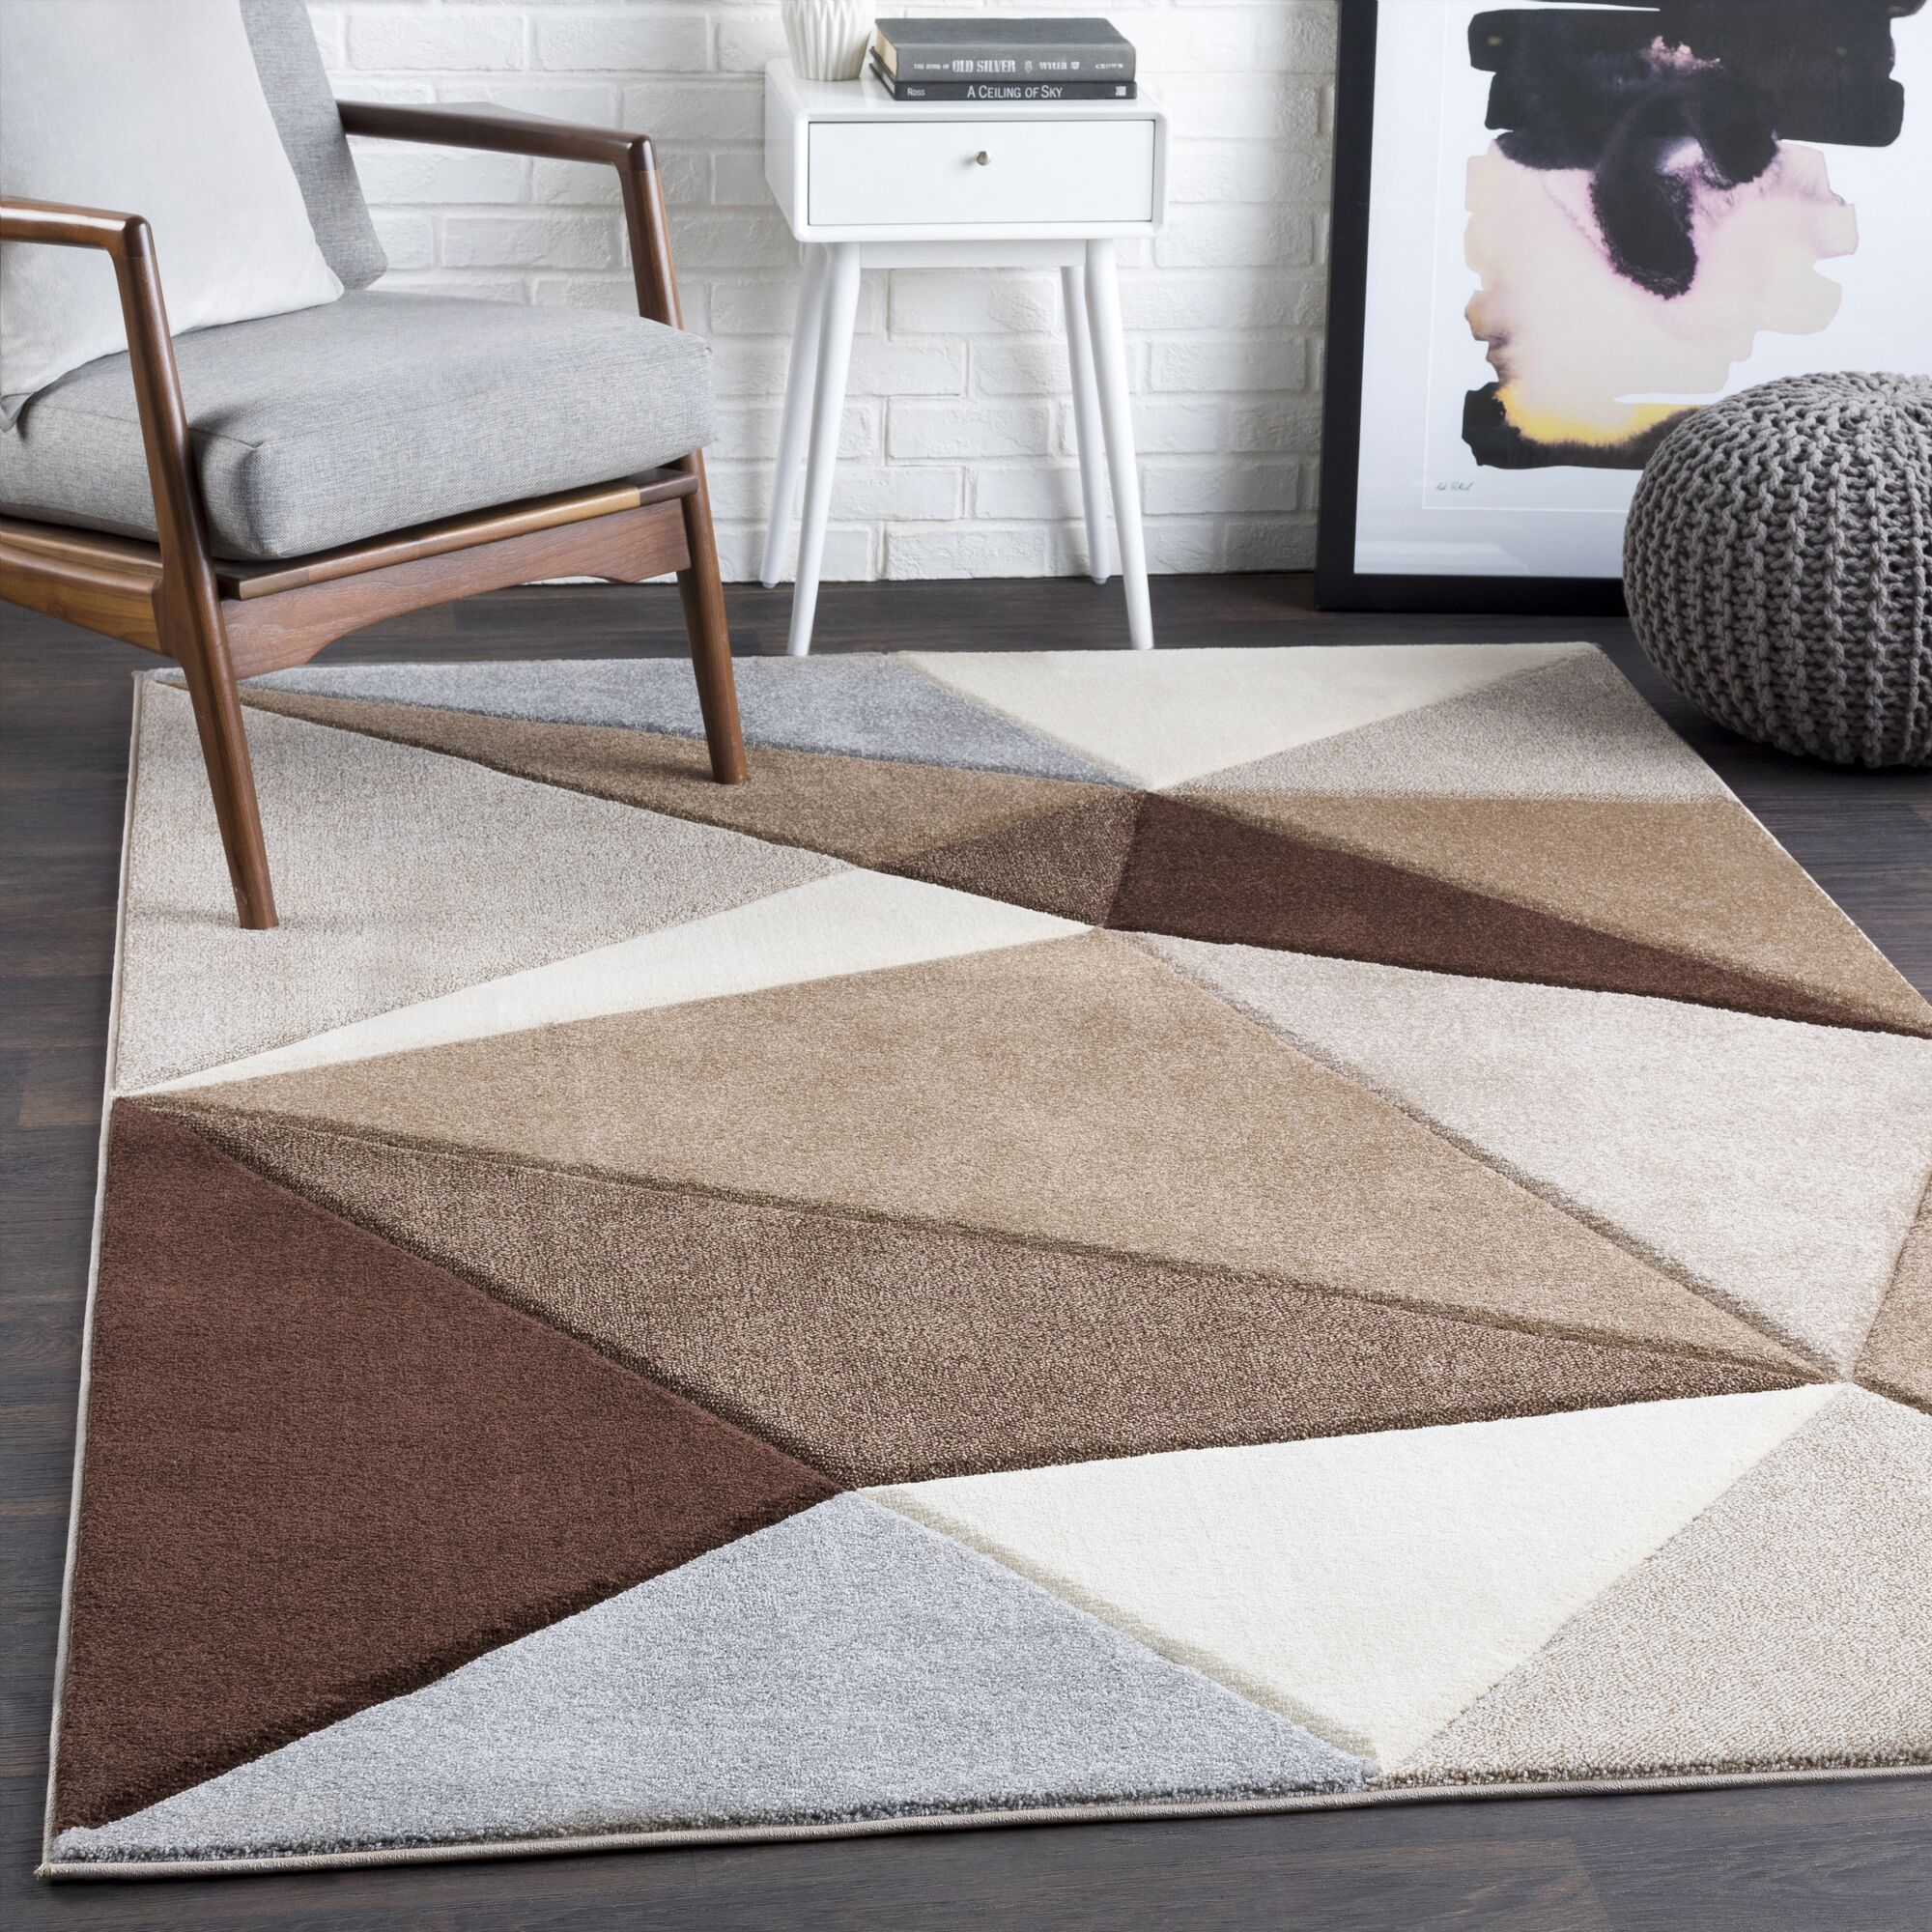 Mott Street Geometric Dark Brown/Camel Area Rug Rug Size: Rectangle 5'3